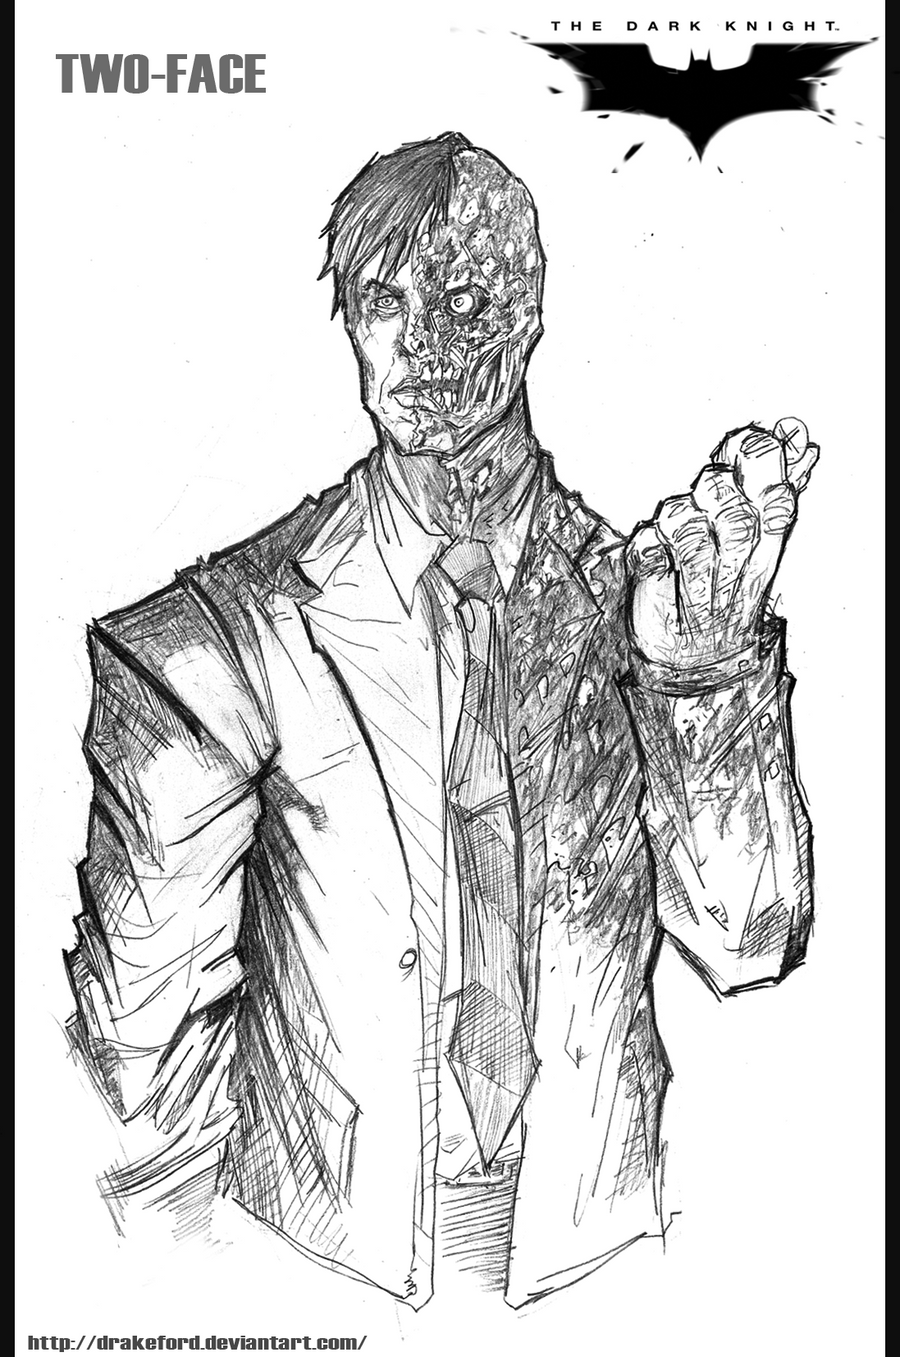 TWO-FACE_THE DARK KNIGHT by DRAKEFORD on DeviantArt